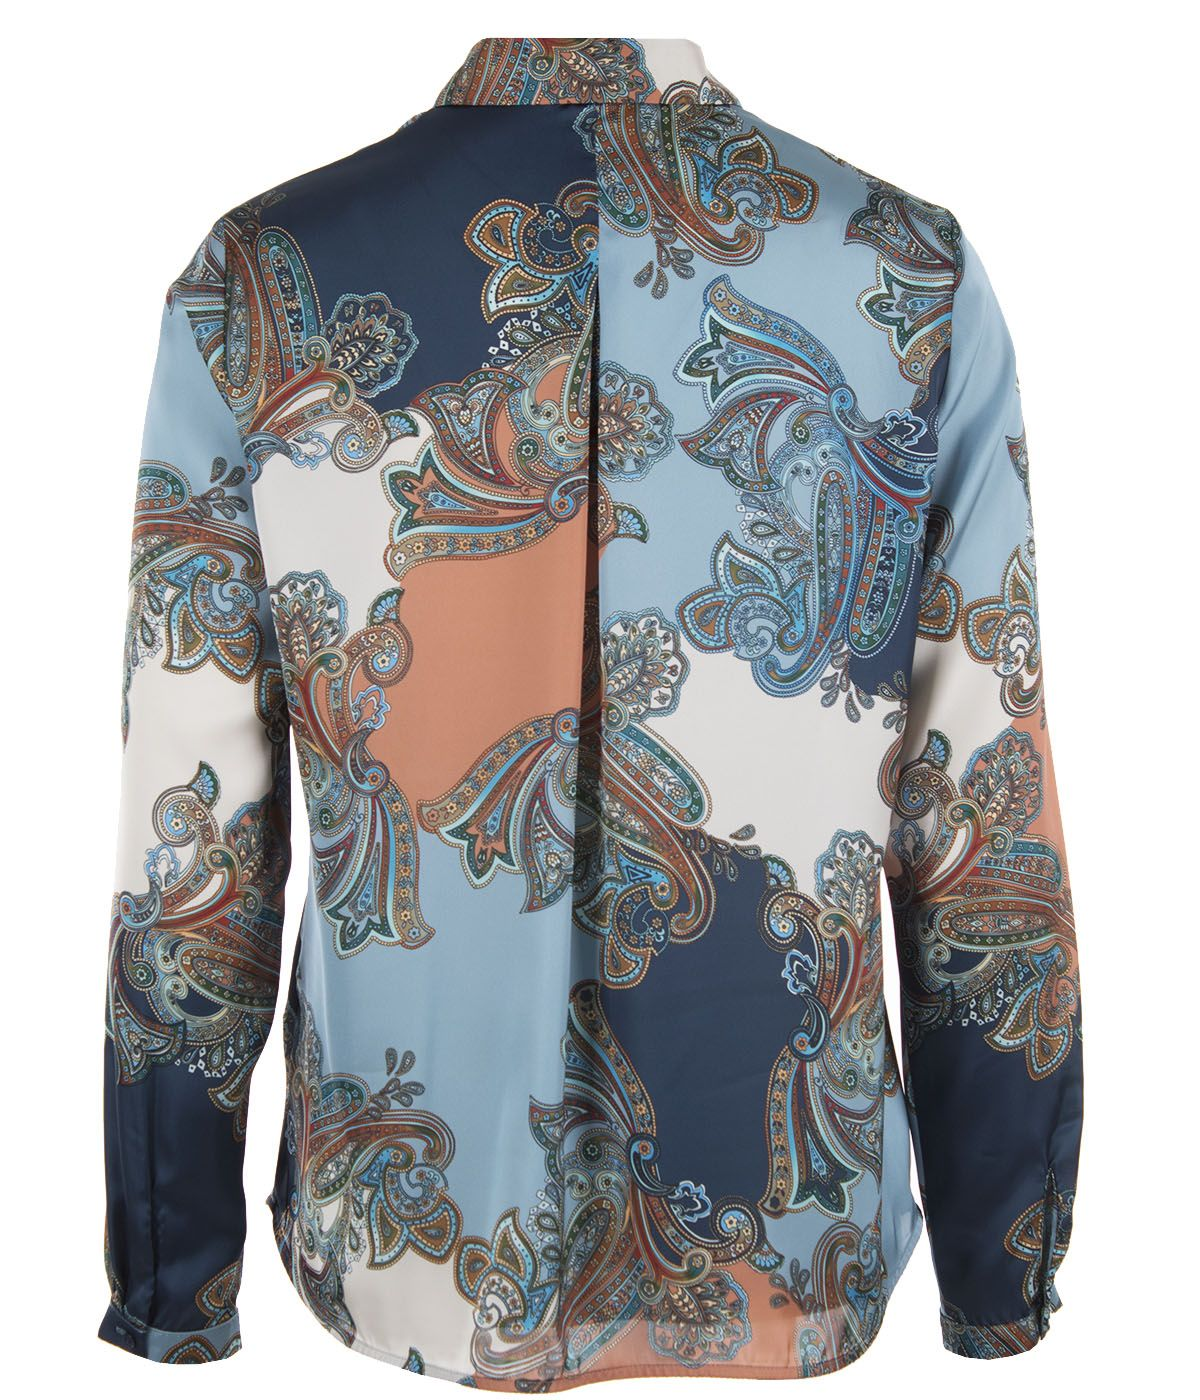 Long-sleeved, high collar blouse with paisley motif 1